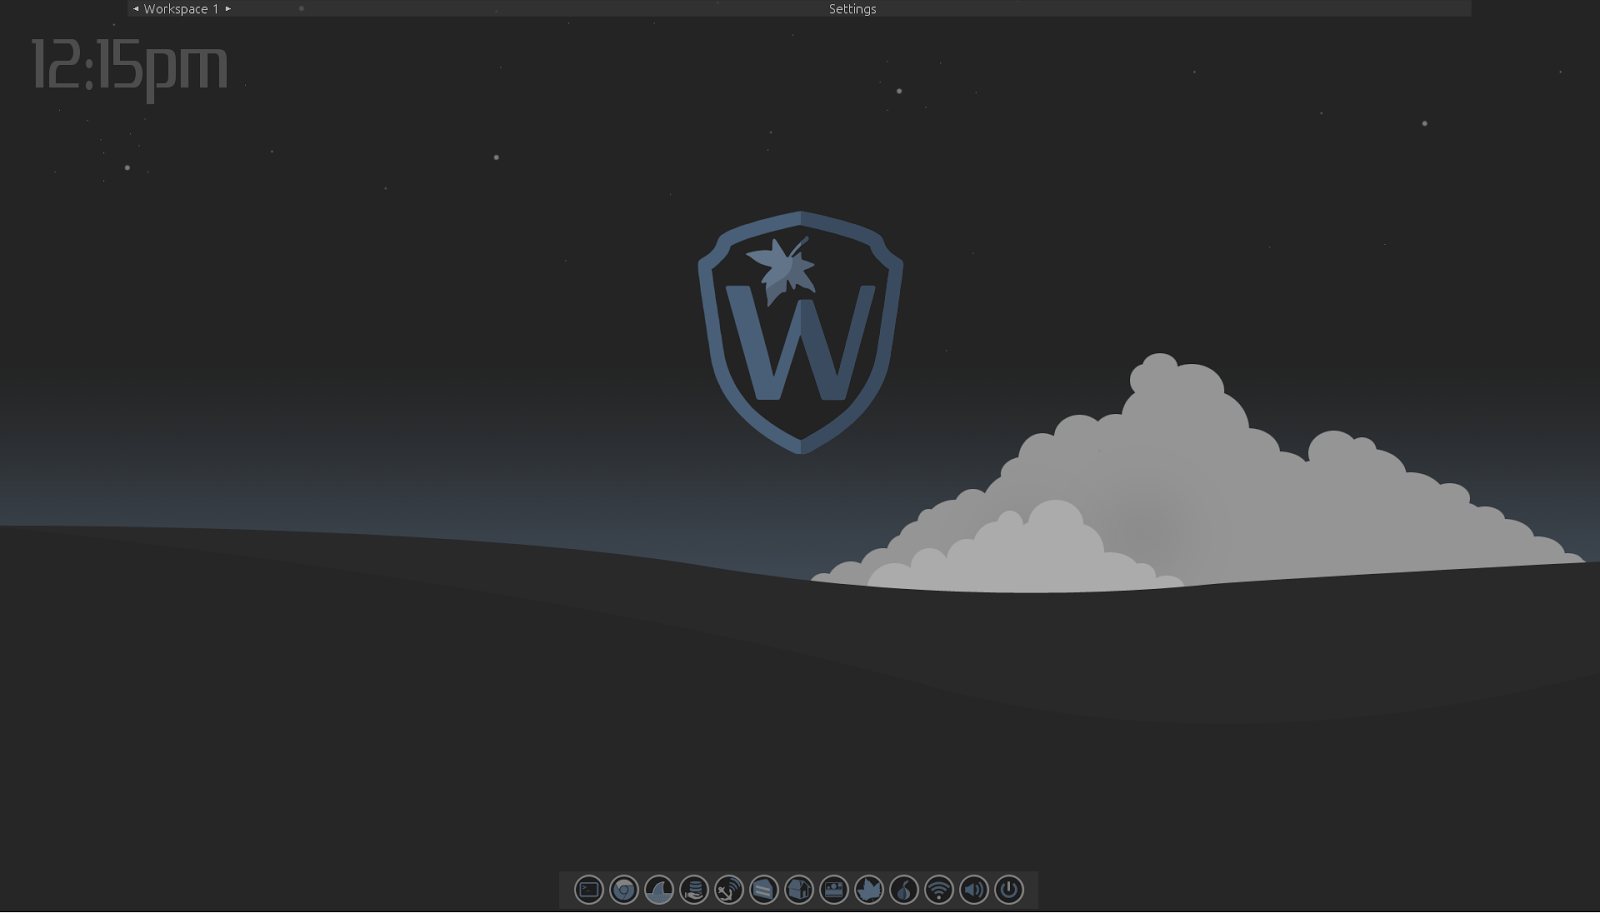 WeakNet Labs: WEAKERTHAN Linux 6 RC7 22 ISO